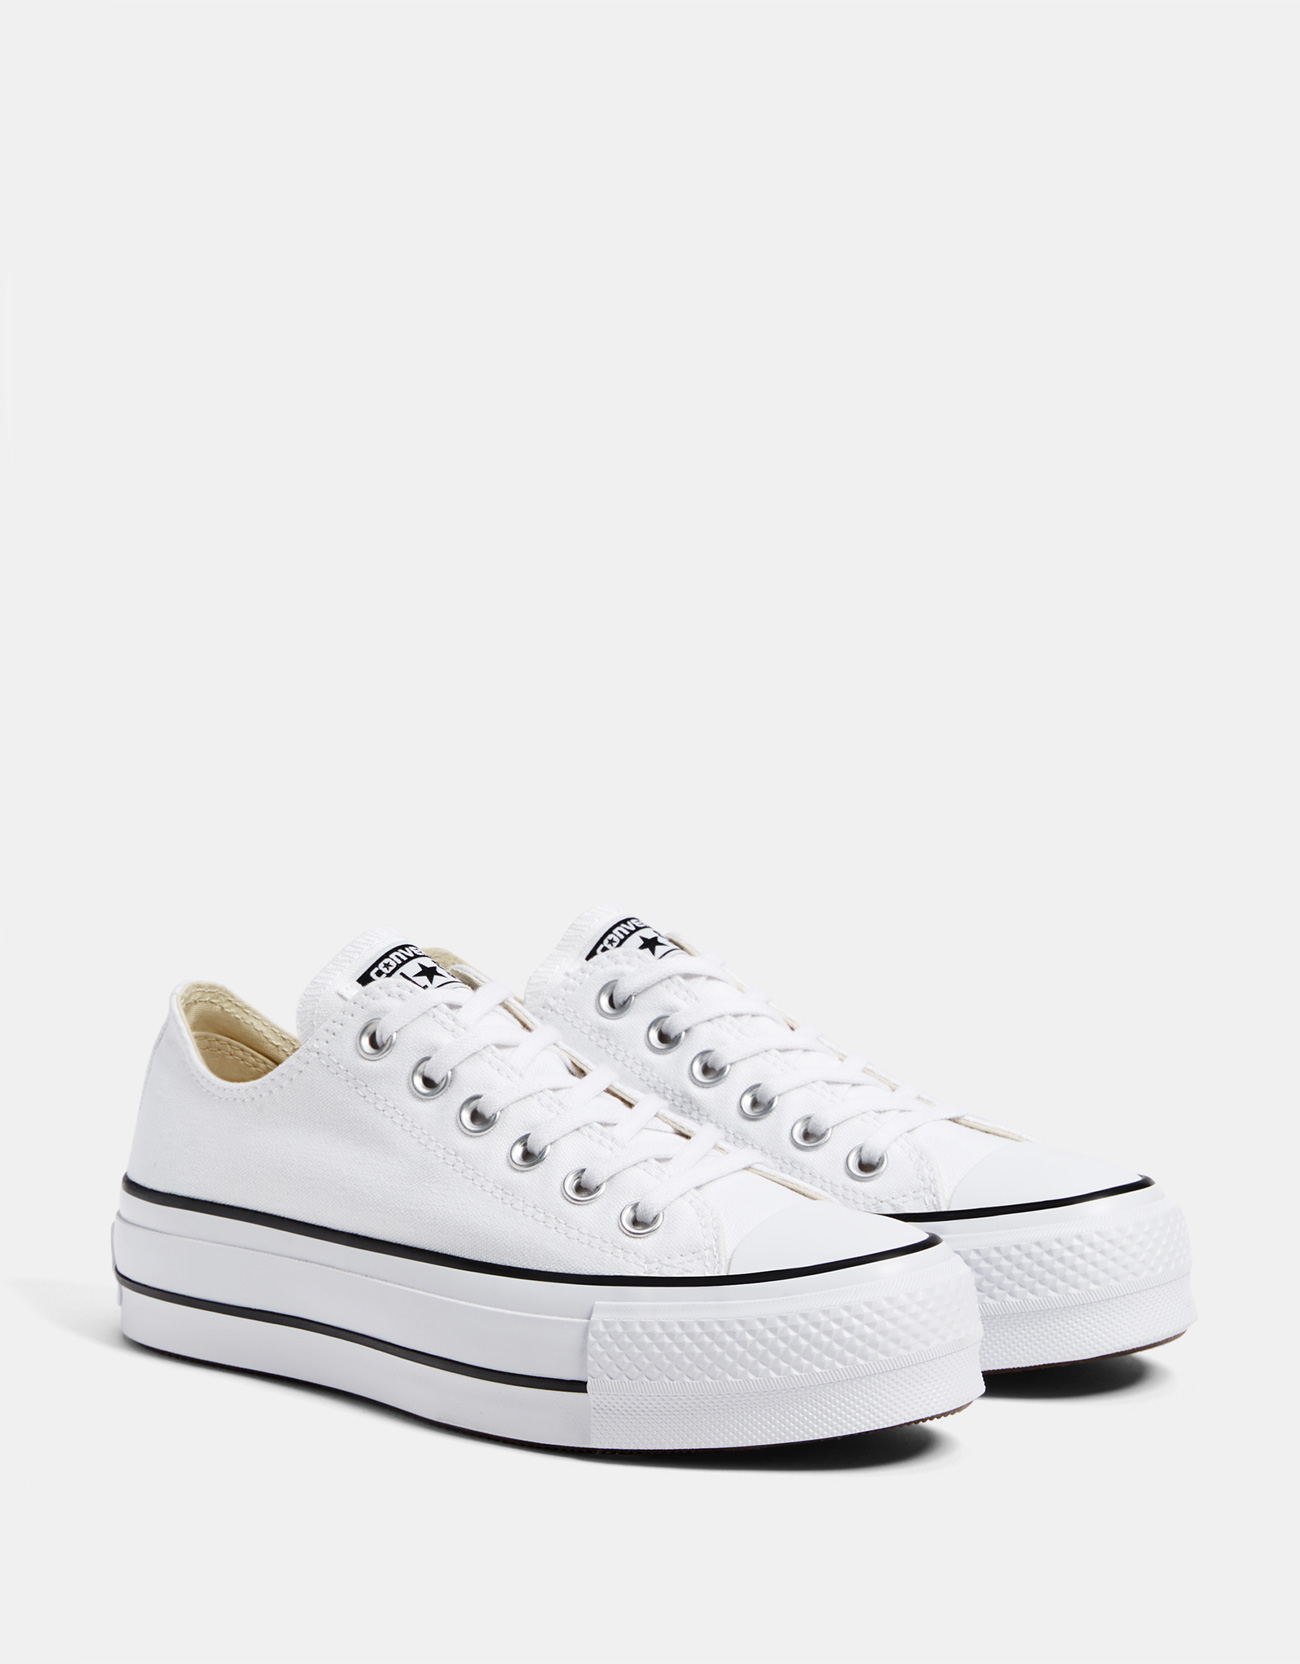 CONVERSE CHUCK TAYLOR ALL STAR platform trainers - Wedges and ... b18b3e5ed